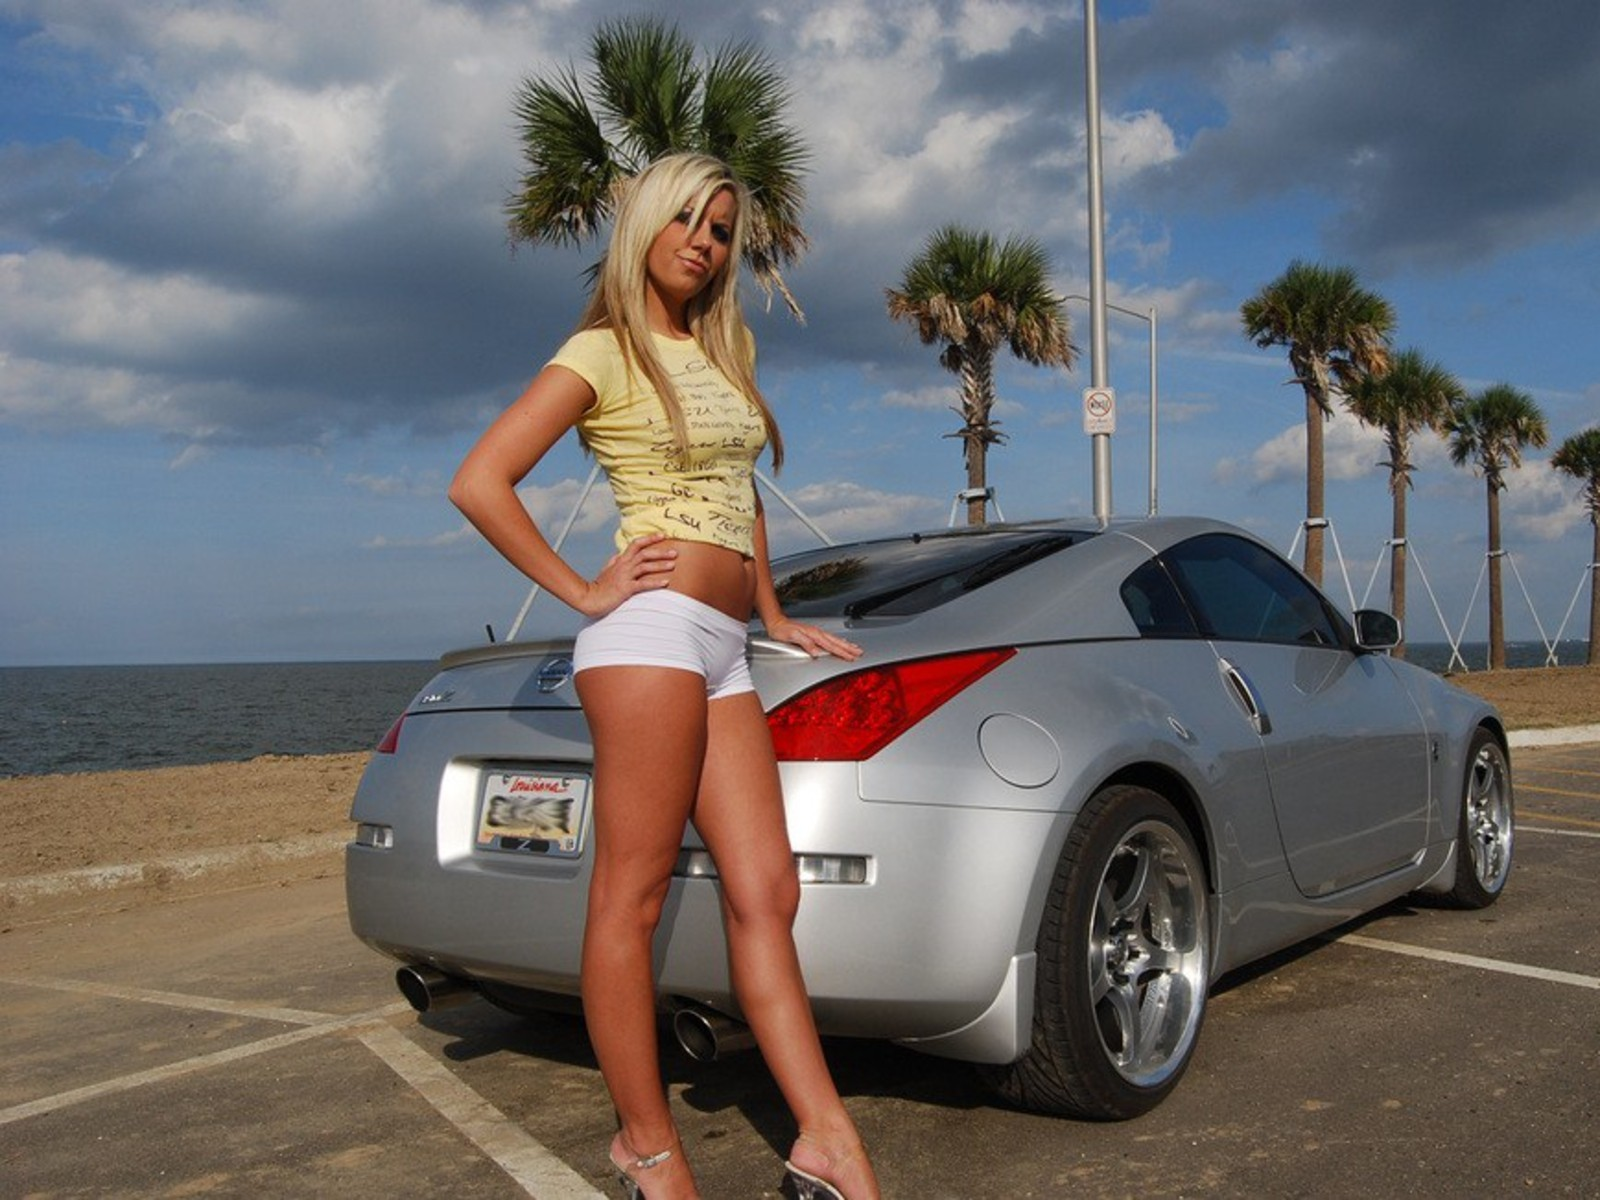 blondes woman clouds cars HD Wallpaper